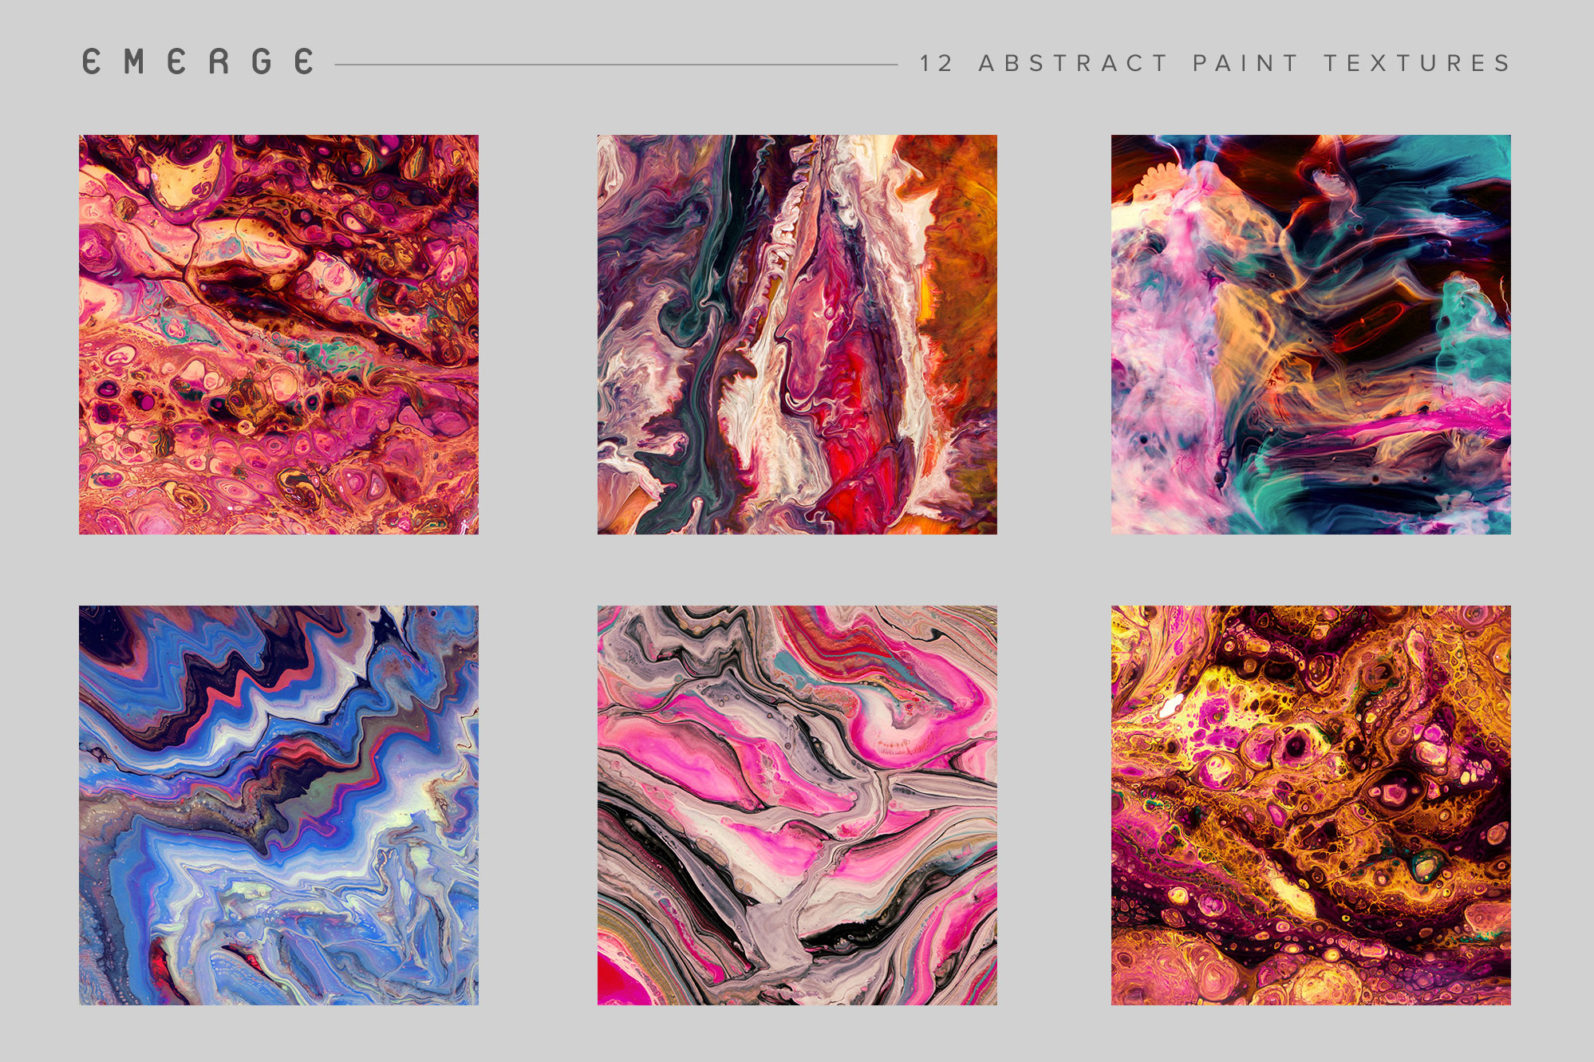 Emerge: 12 Abstract Paint Textures - 12 Emerge preview grid 07 12 -